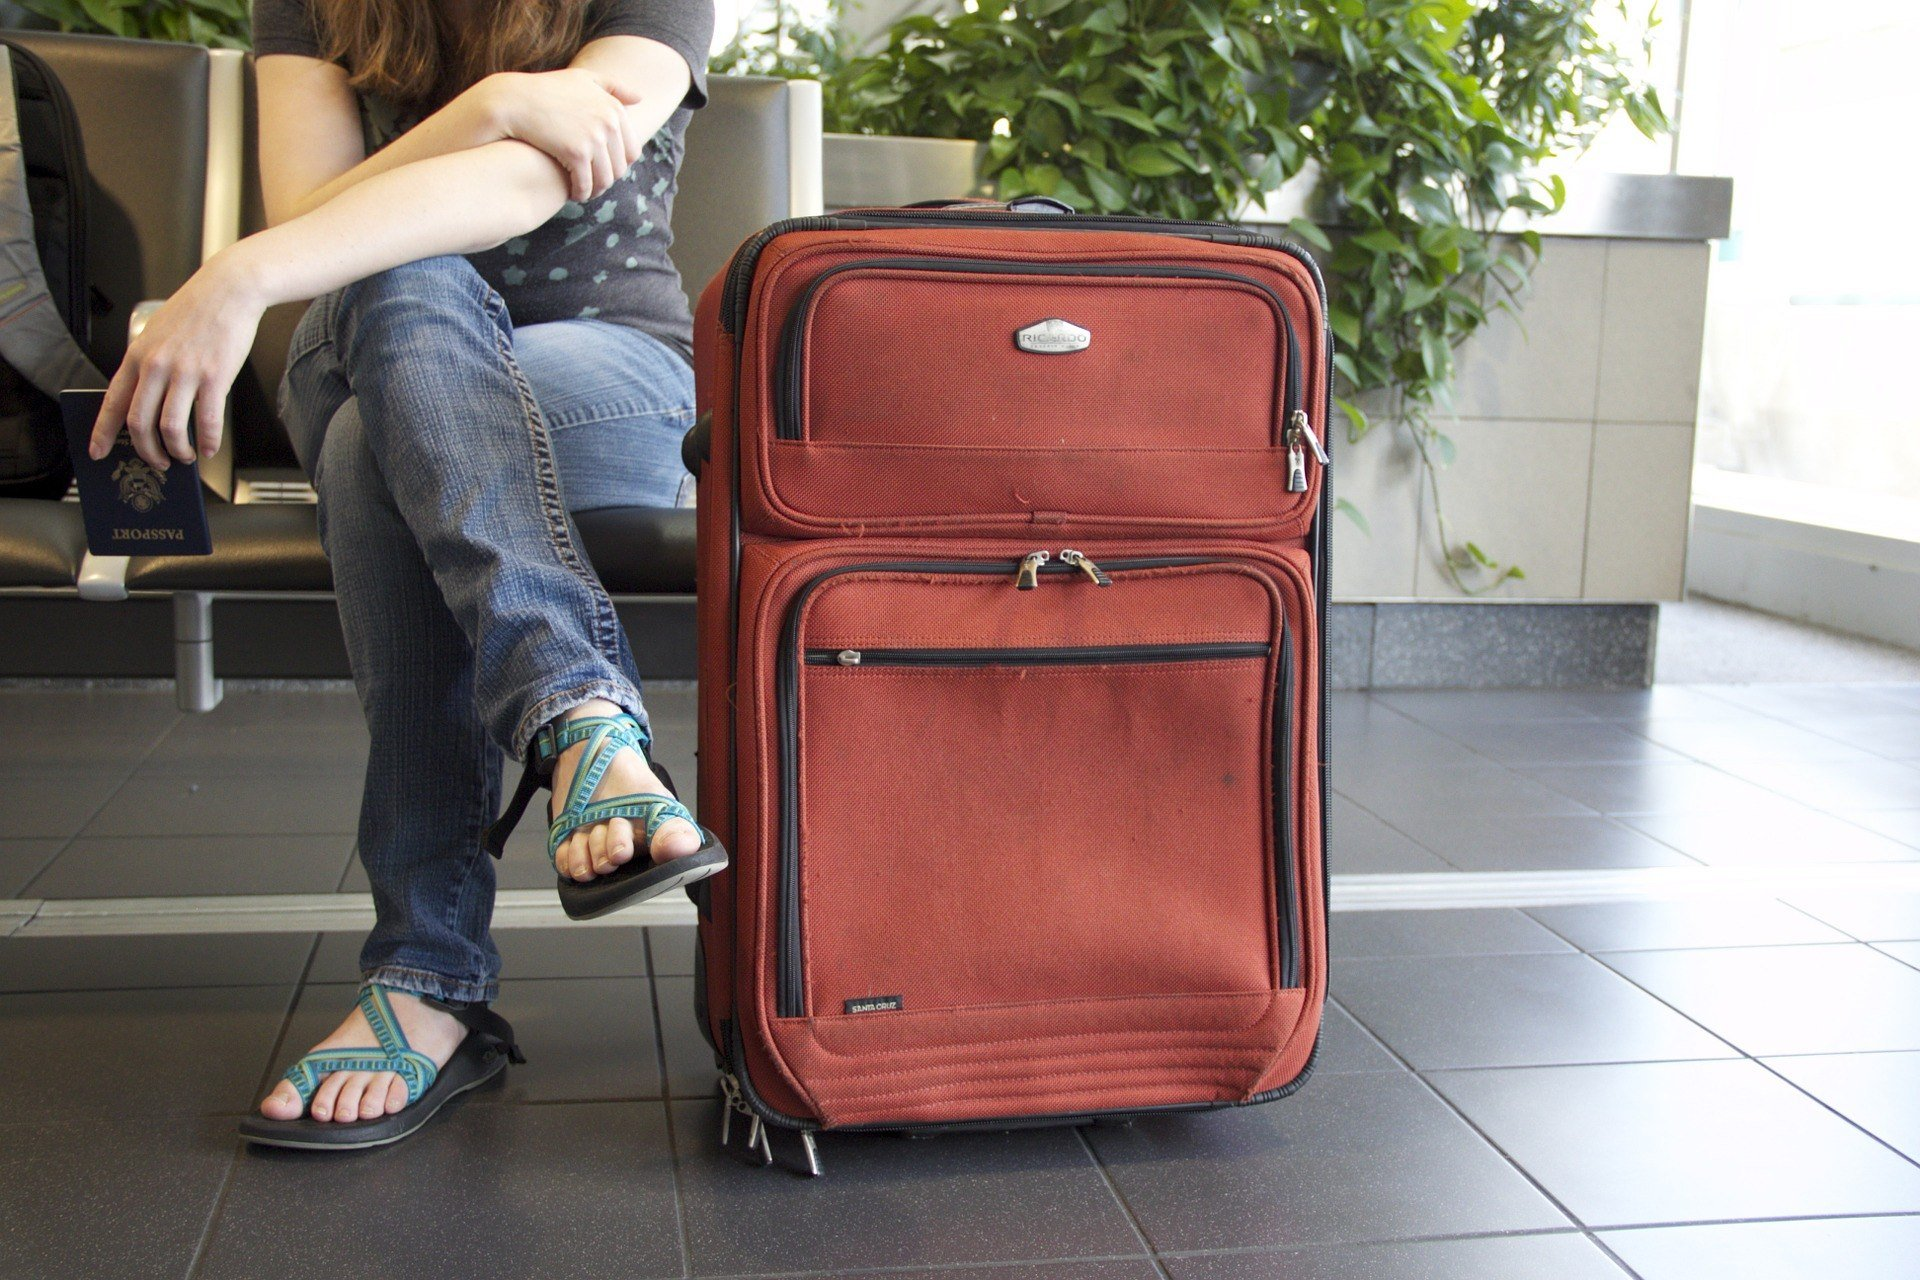 Girl and suitcase at airport